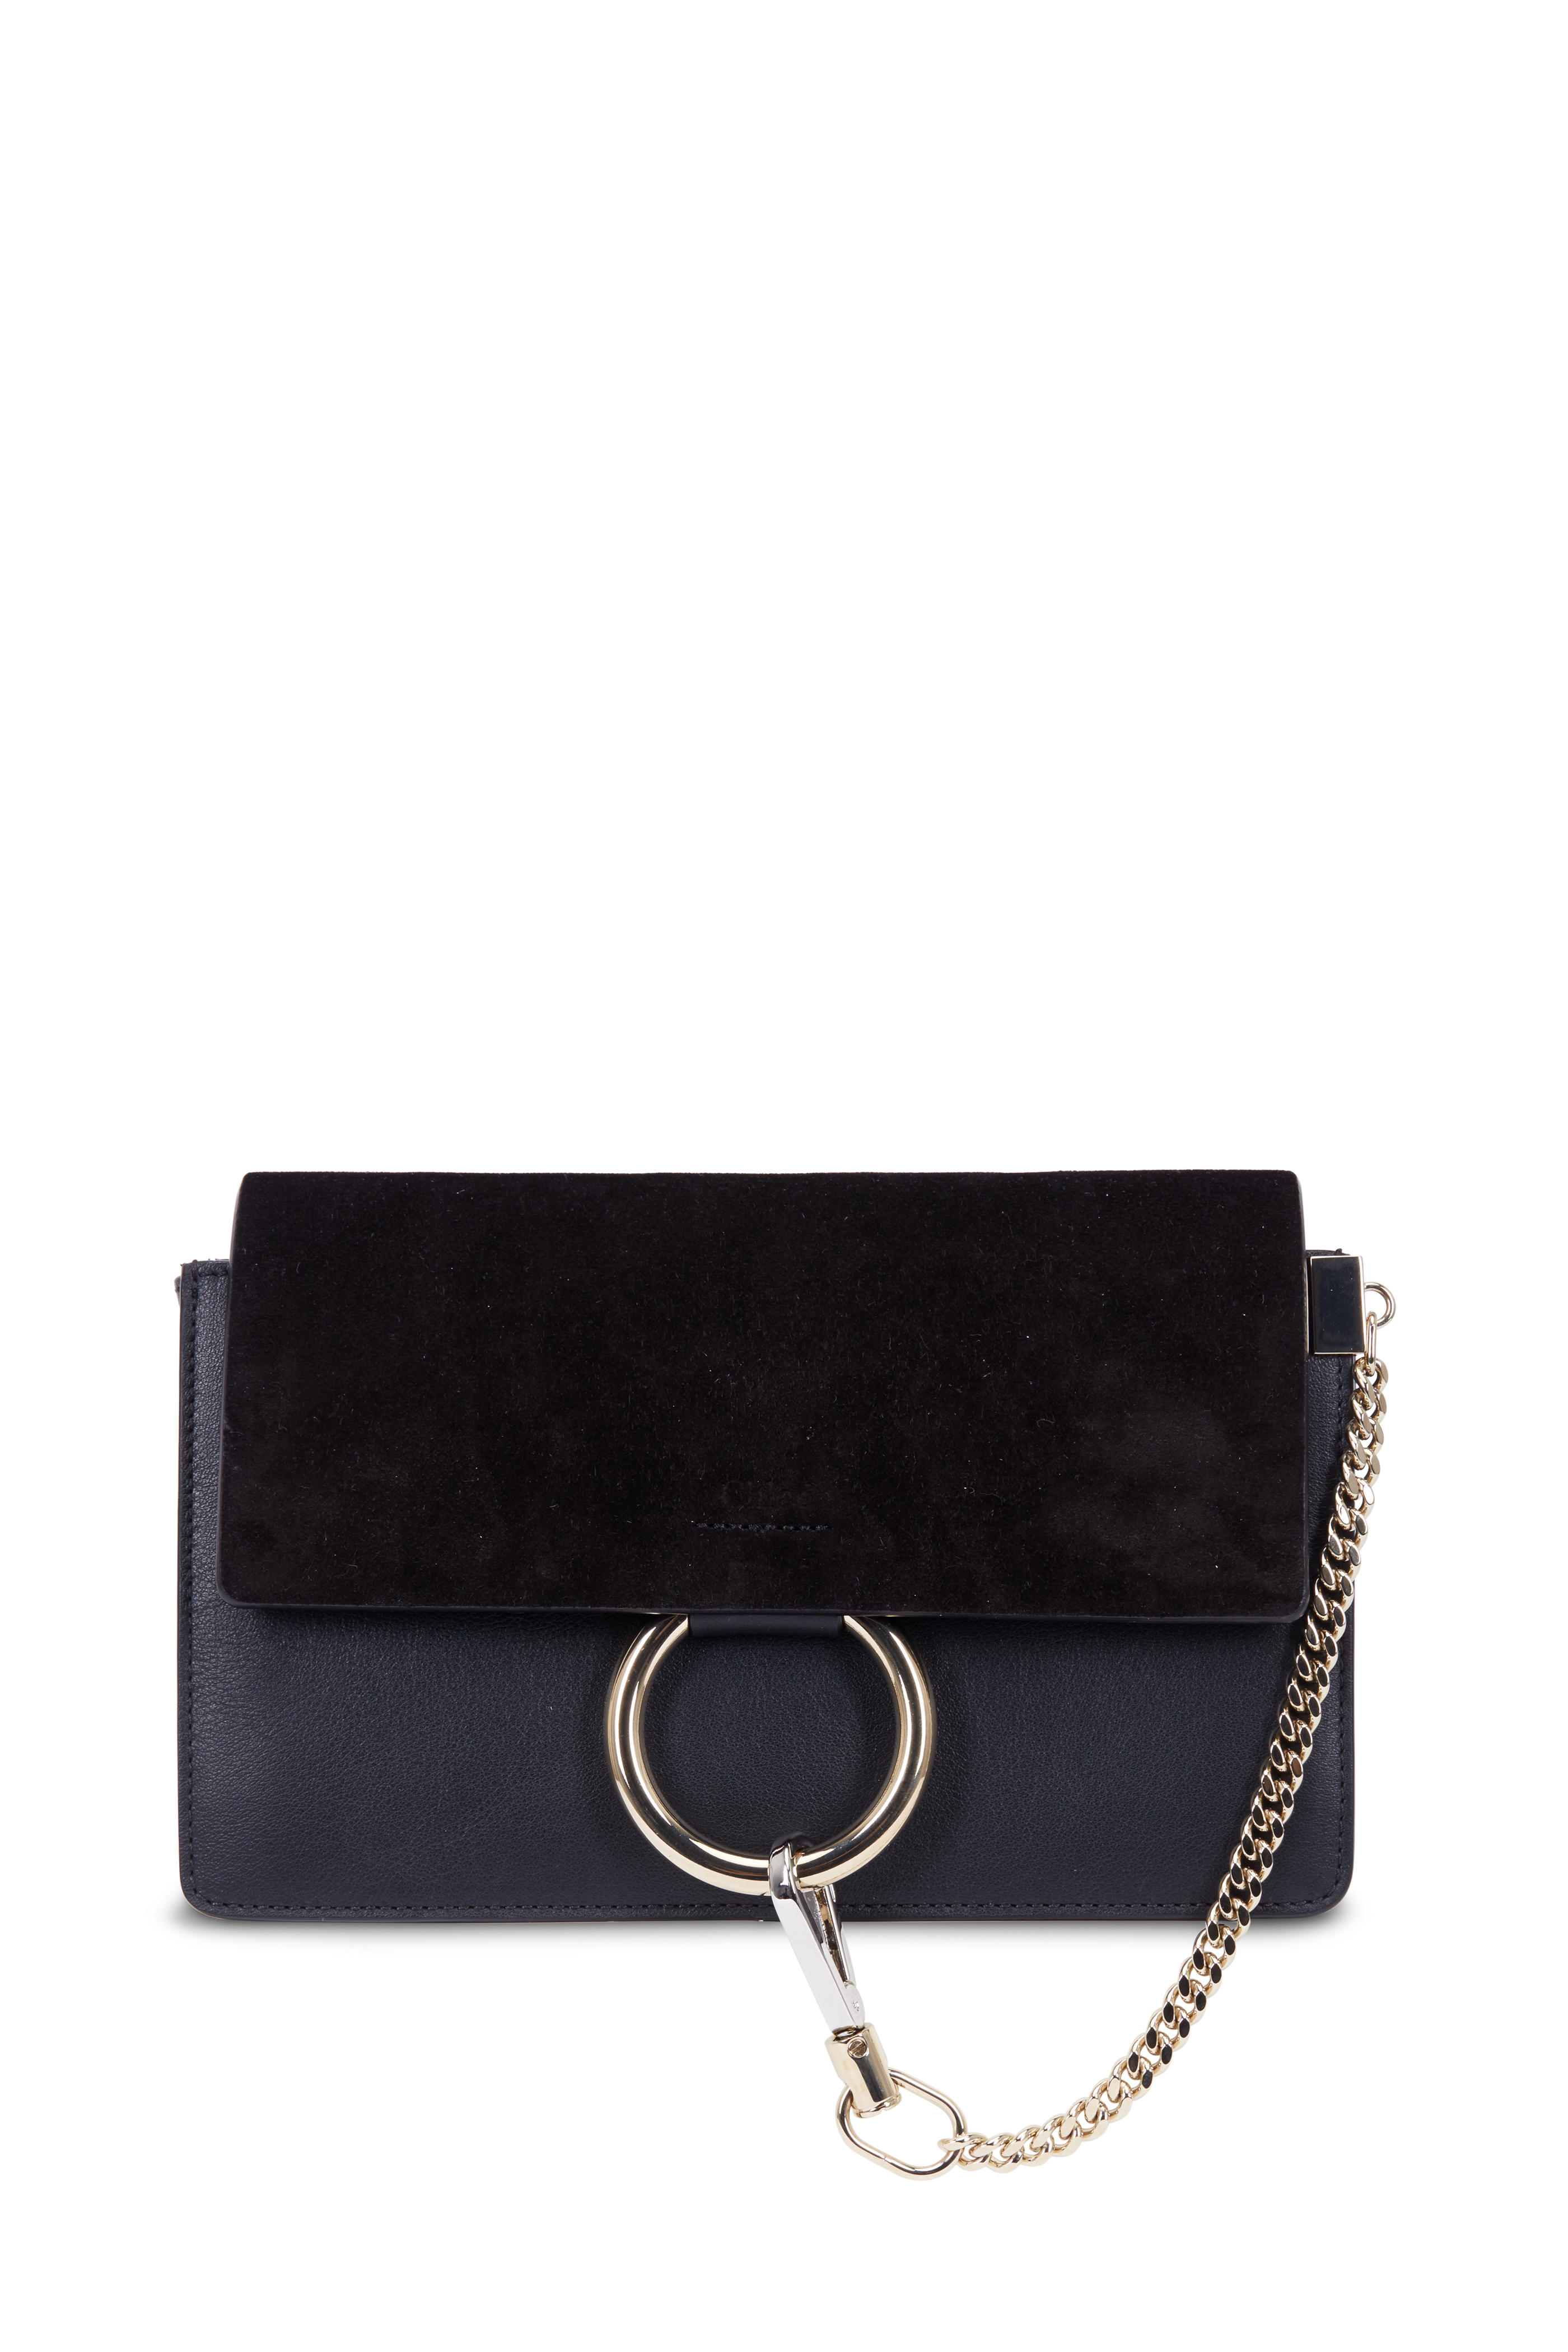 c74ce41fd4 Chloé - Faye Black Leather & Suede Small Shoulder Bag | Mitchell Stores